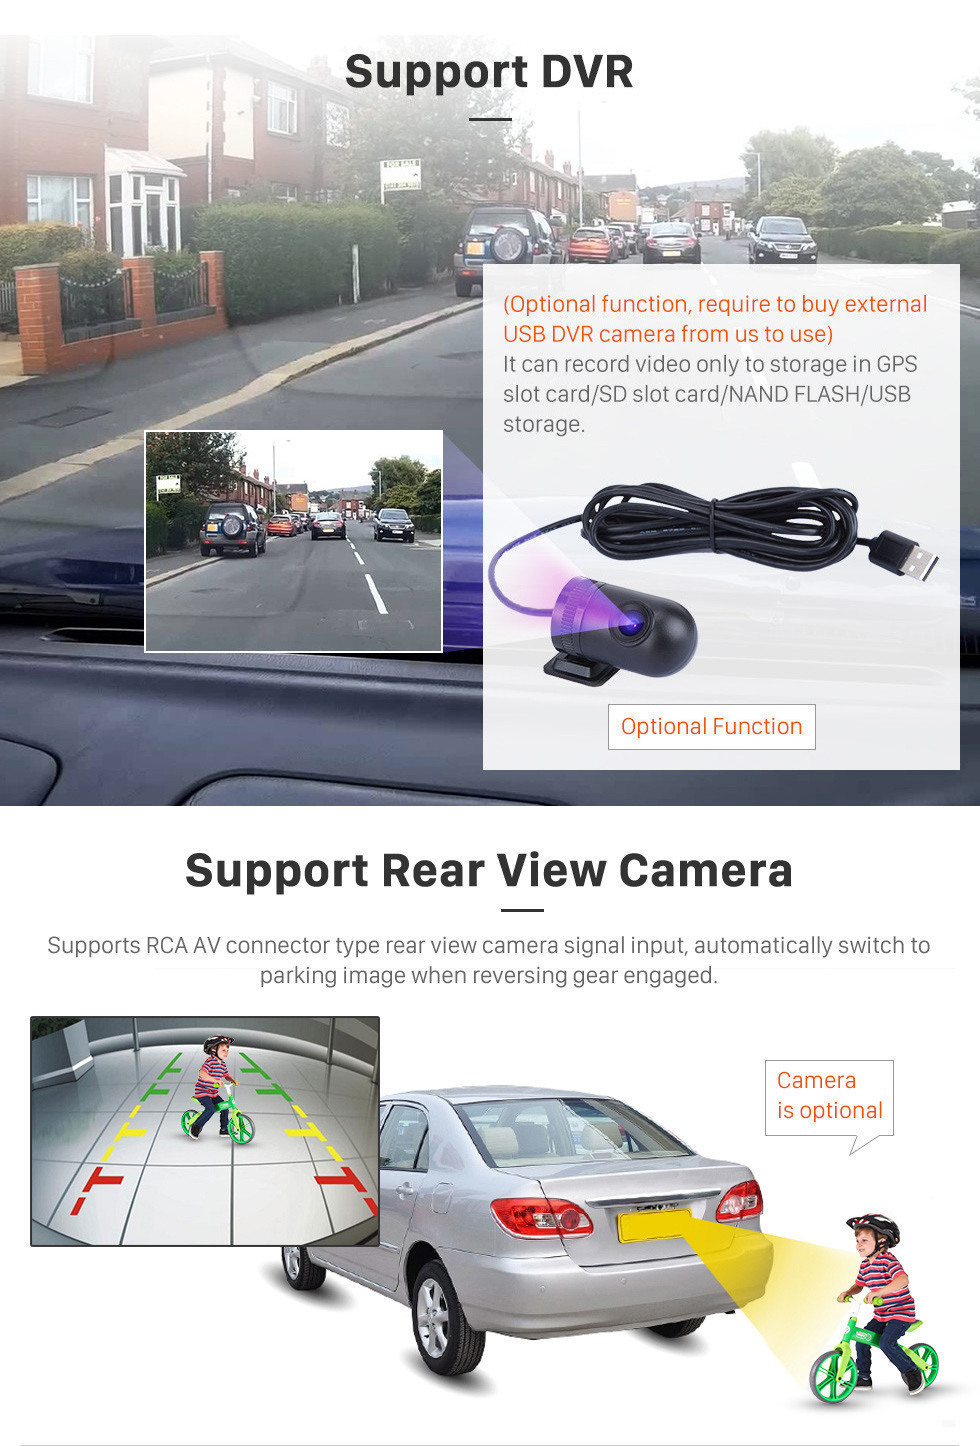 Seicane 8 Inch Android 9.0 Bluetooth Radio For 2003-2010 PORSCHE Cayenne with GPS Navigation system TPMS DVR OBD II Rear camera AUX Headrest Monitor Control USB SD Video 4G WiFi Capacitive Touch Screen